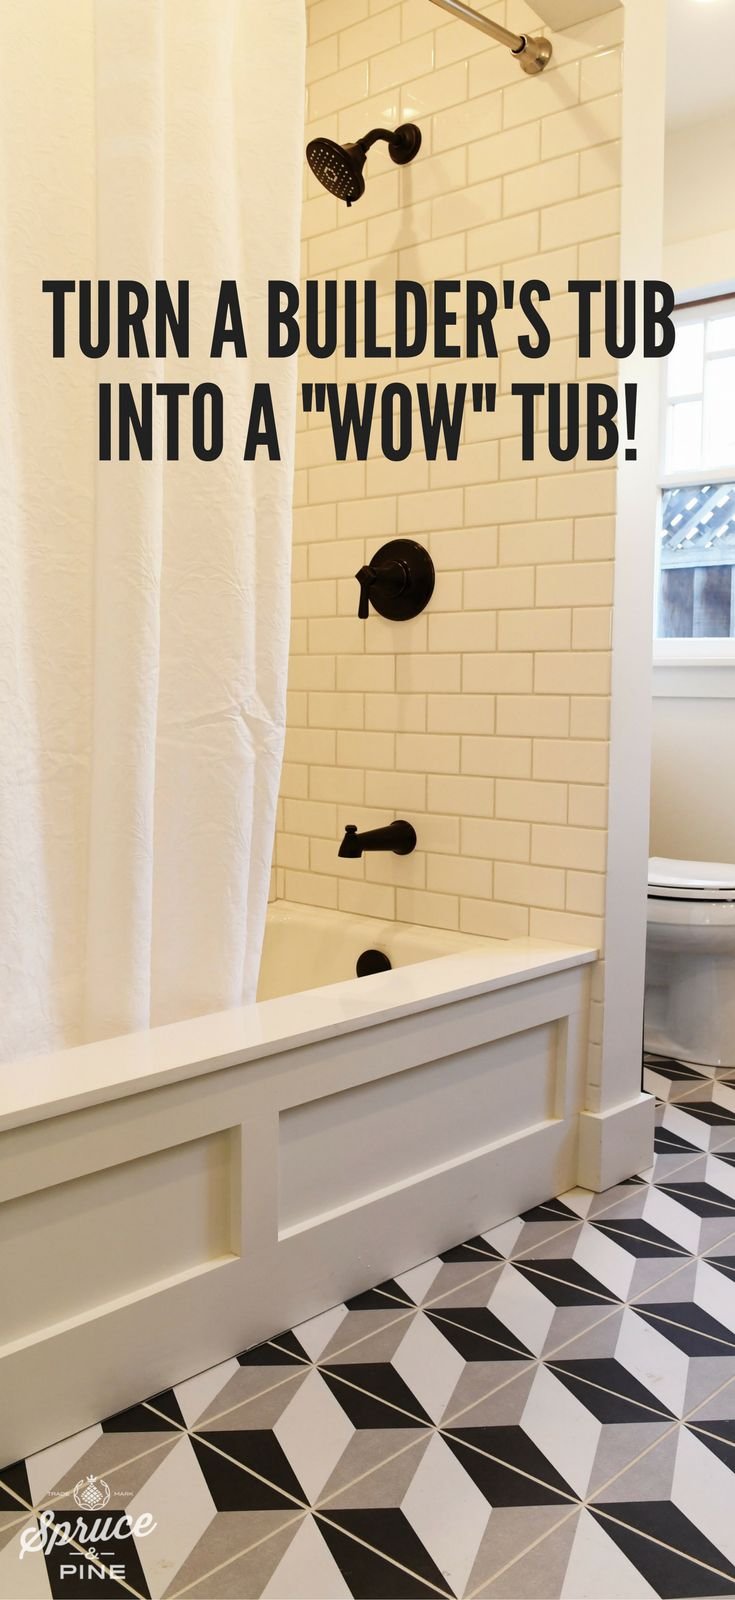 Even the most basic bath tub can be expensive. And when you are flipping homes, it's important to try to curb costs wherever possible while creating a superior product. My partner, Lance, came up with this tub trick and we've used it about 3 times now wit